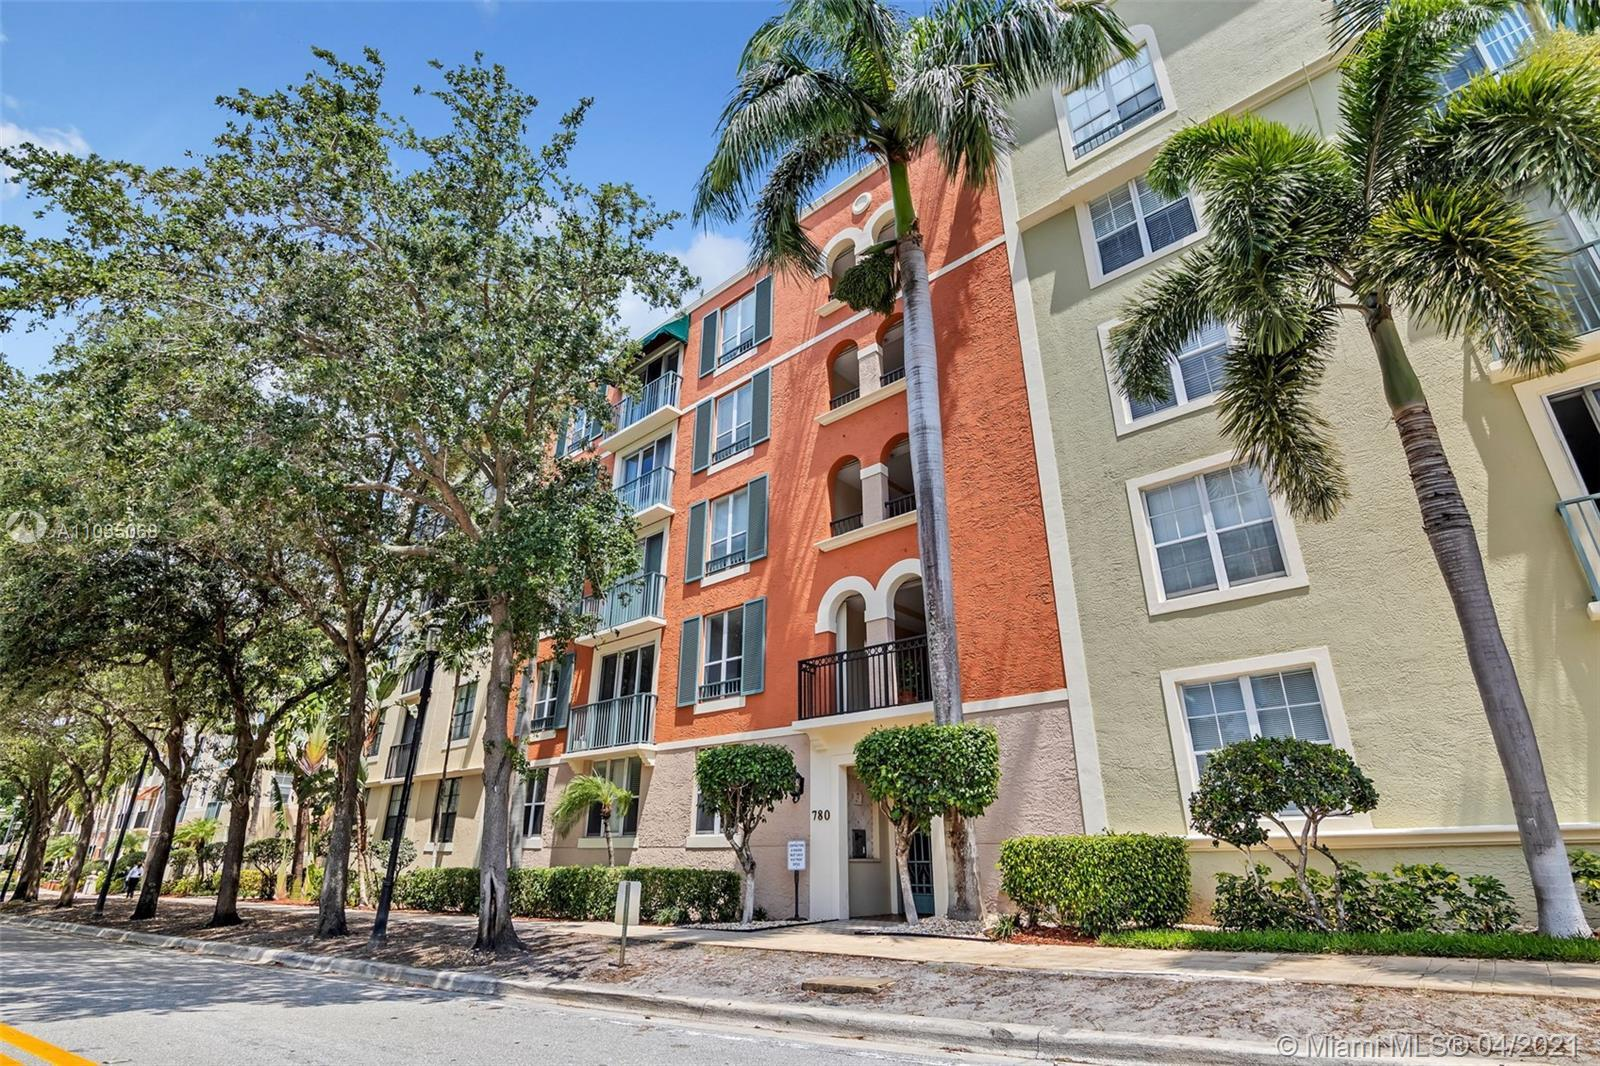 Recently renovated 2 bedroom 2 bath condo in the heart of West Palm Beach's revamped Rosemary Square